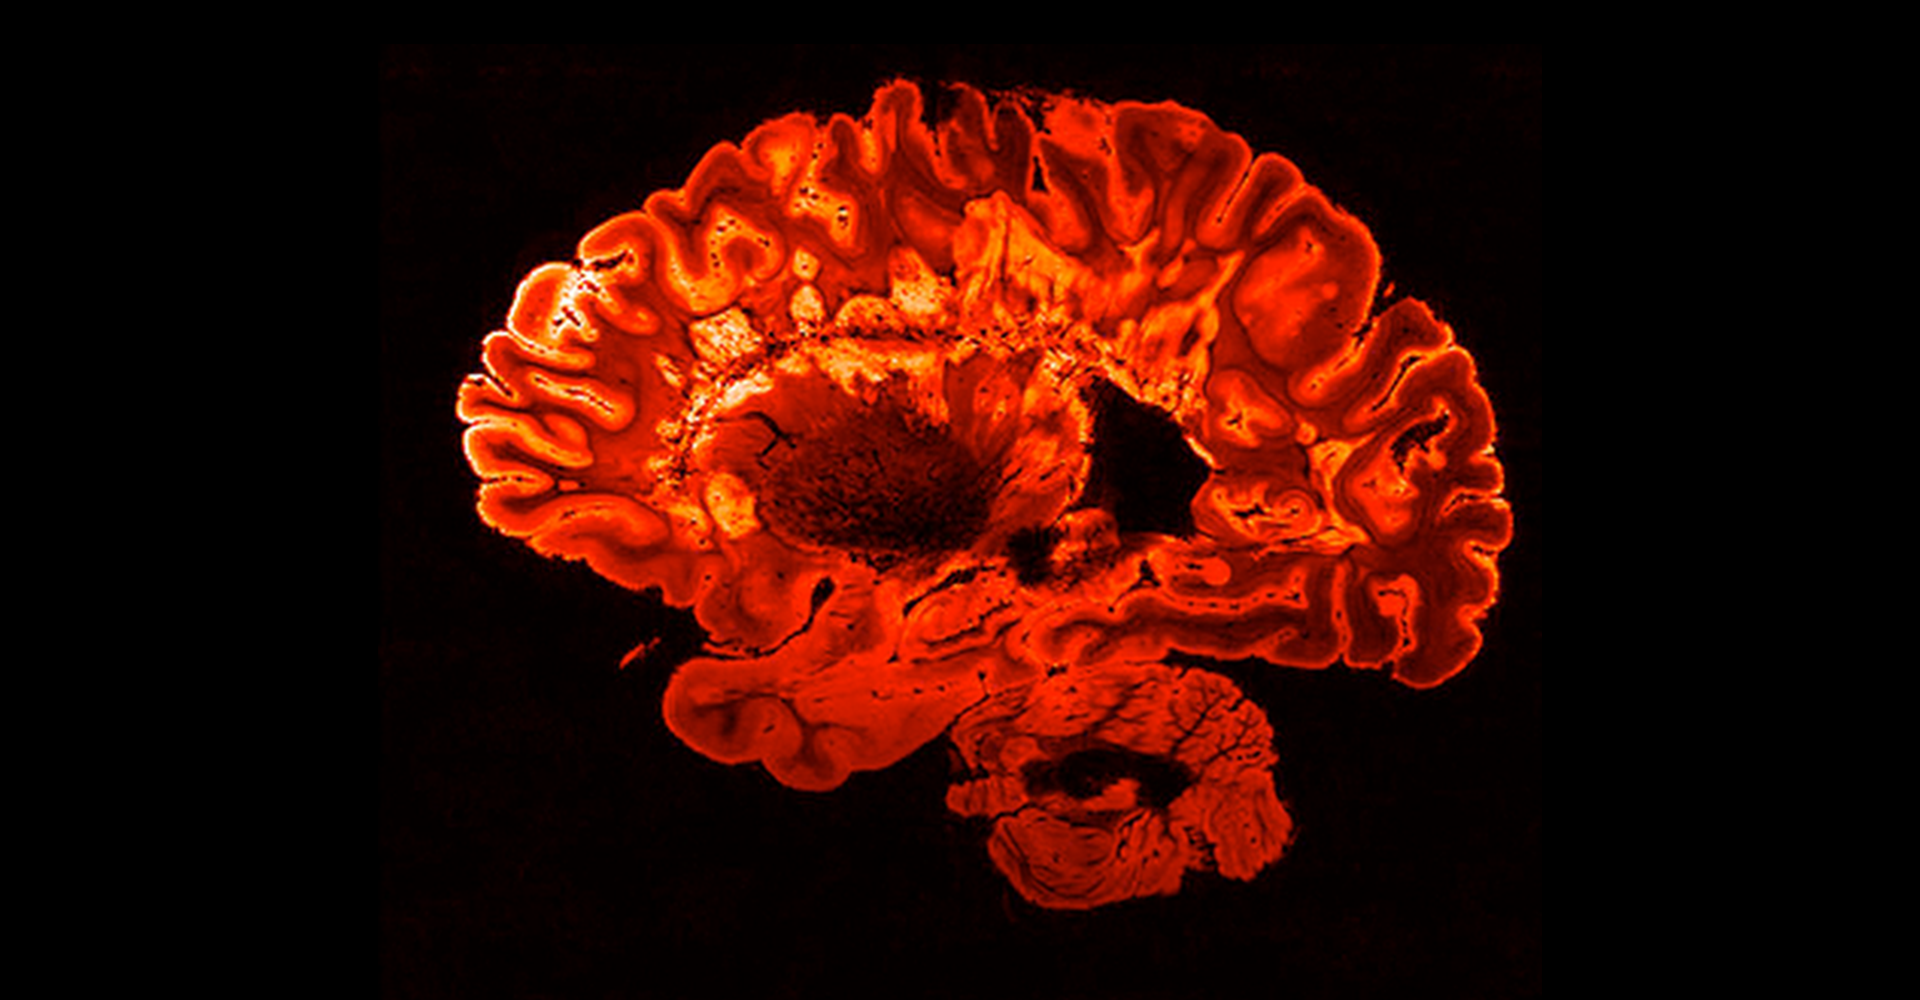 red mri brain scan